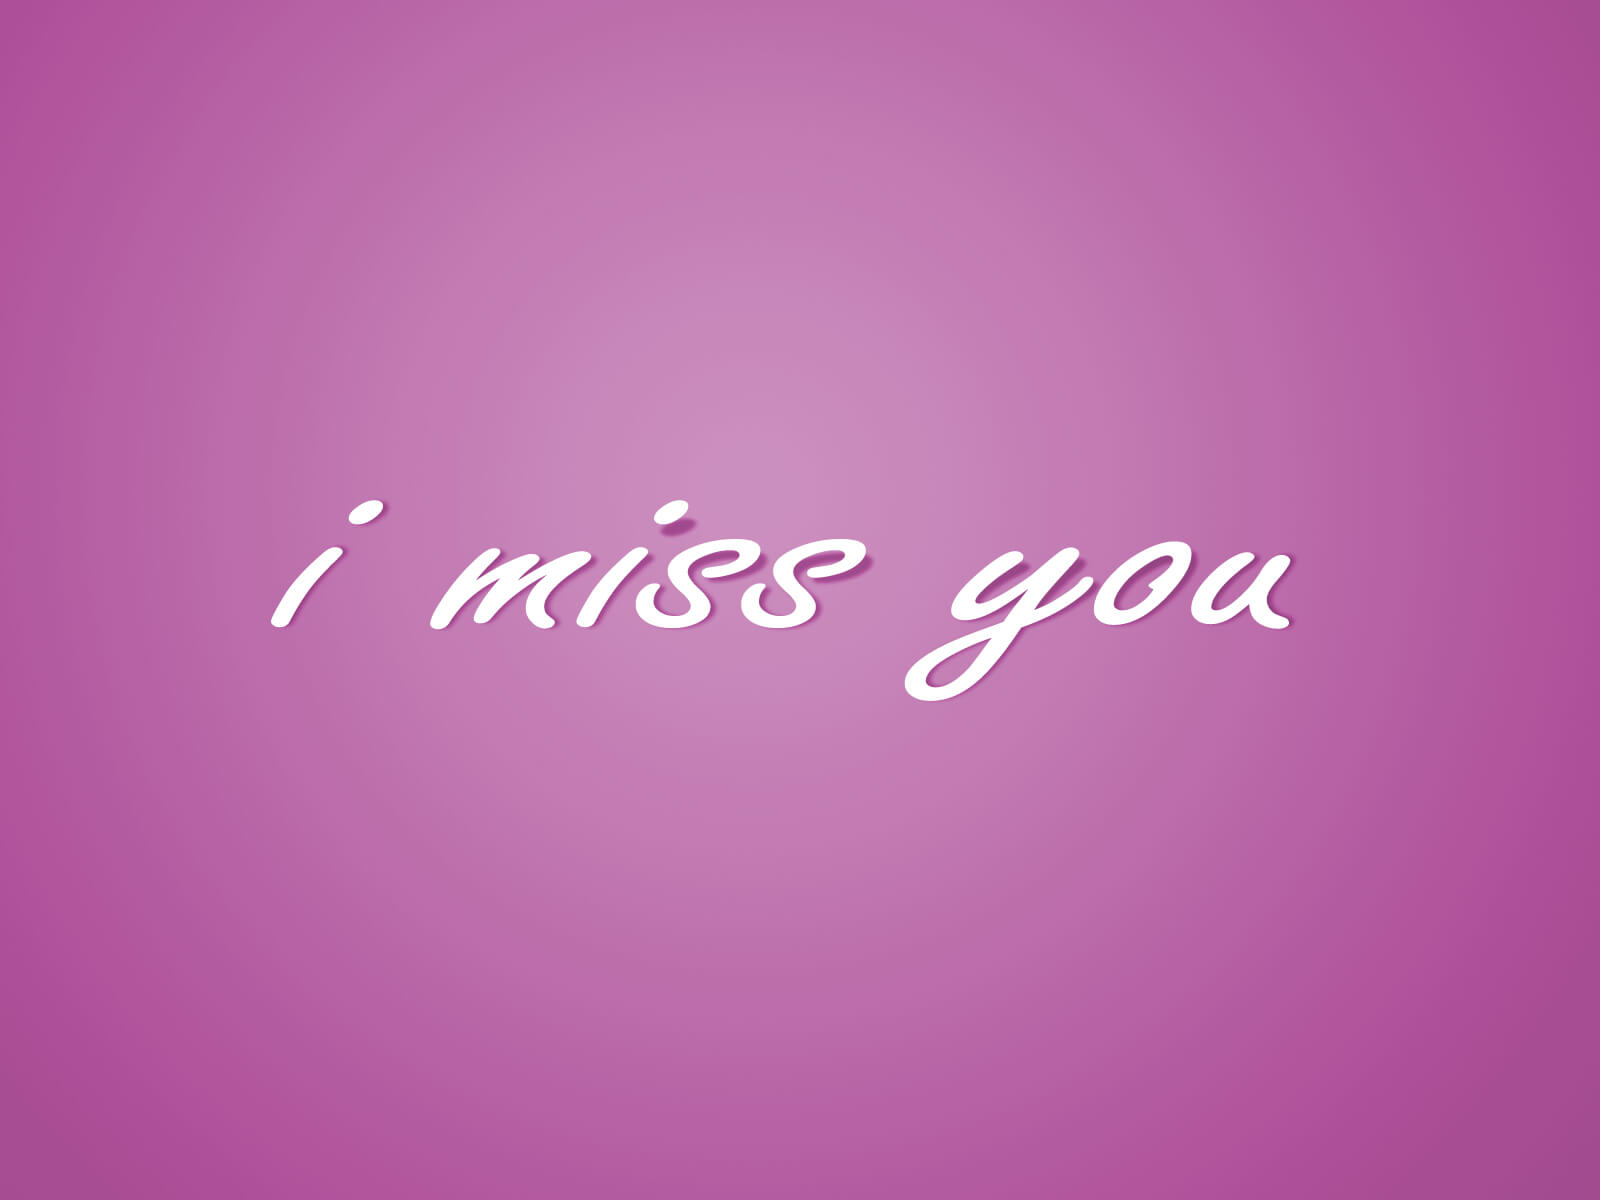 i miss you purple background wallpaper